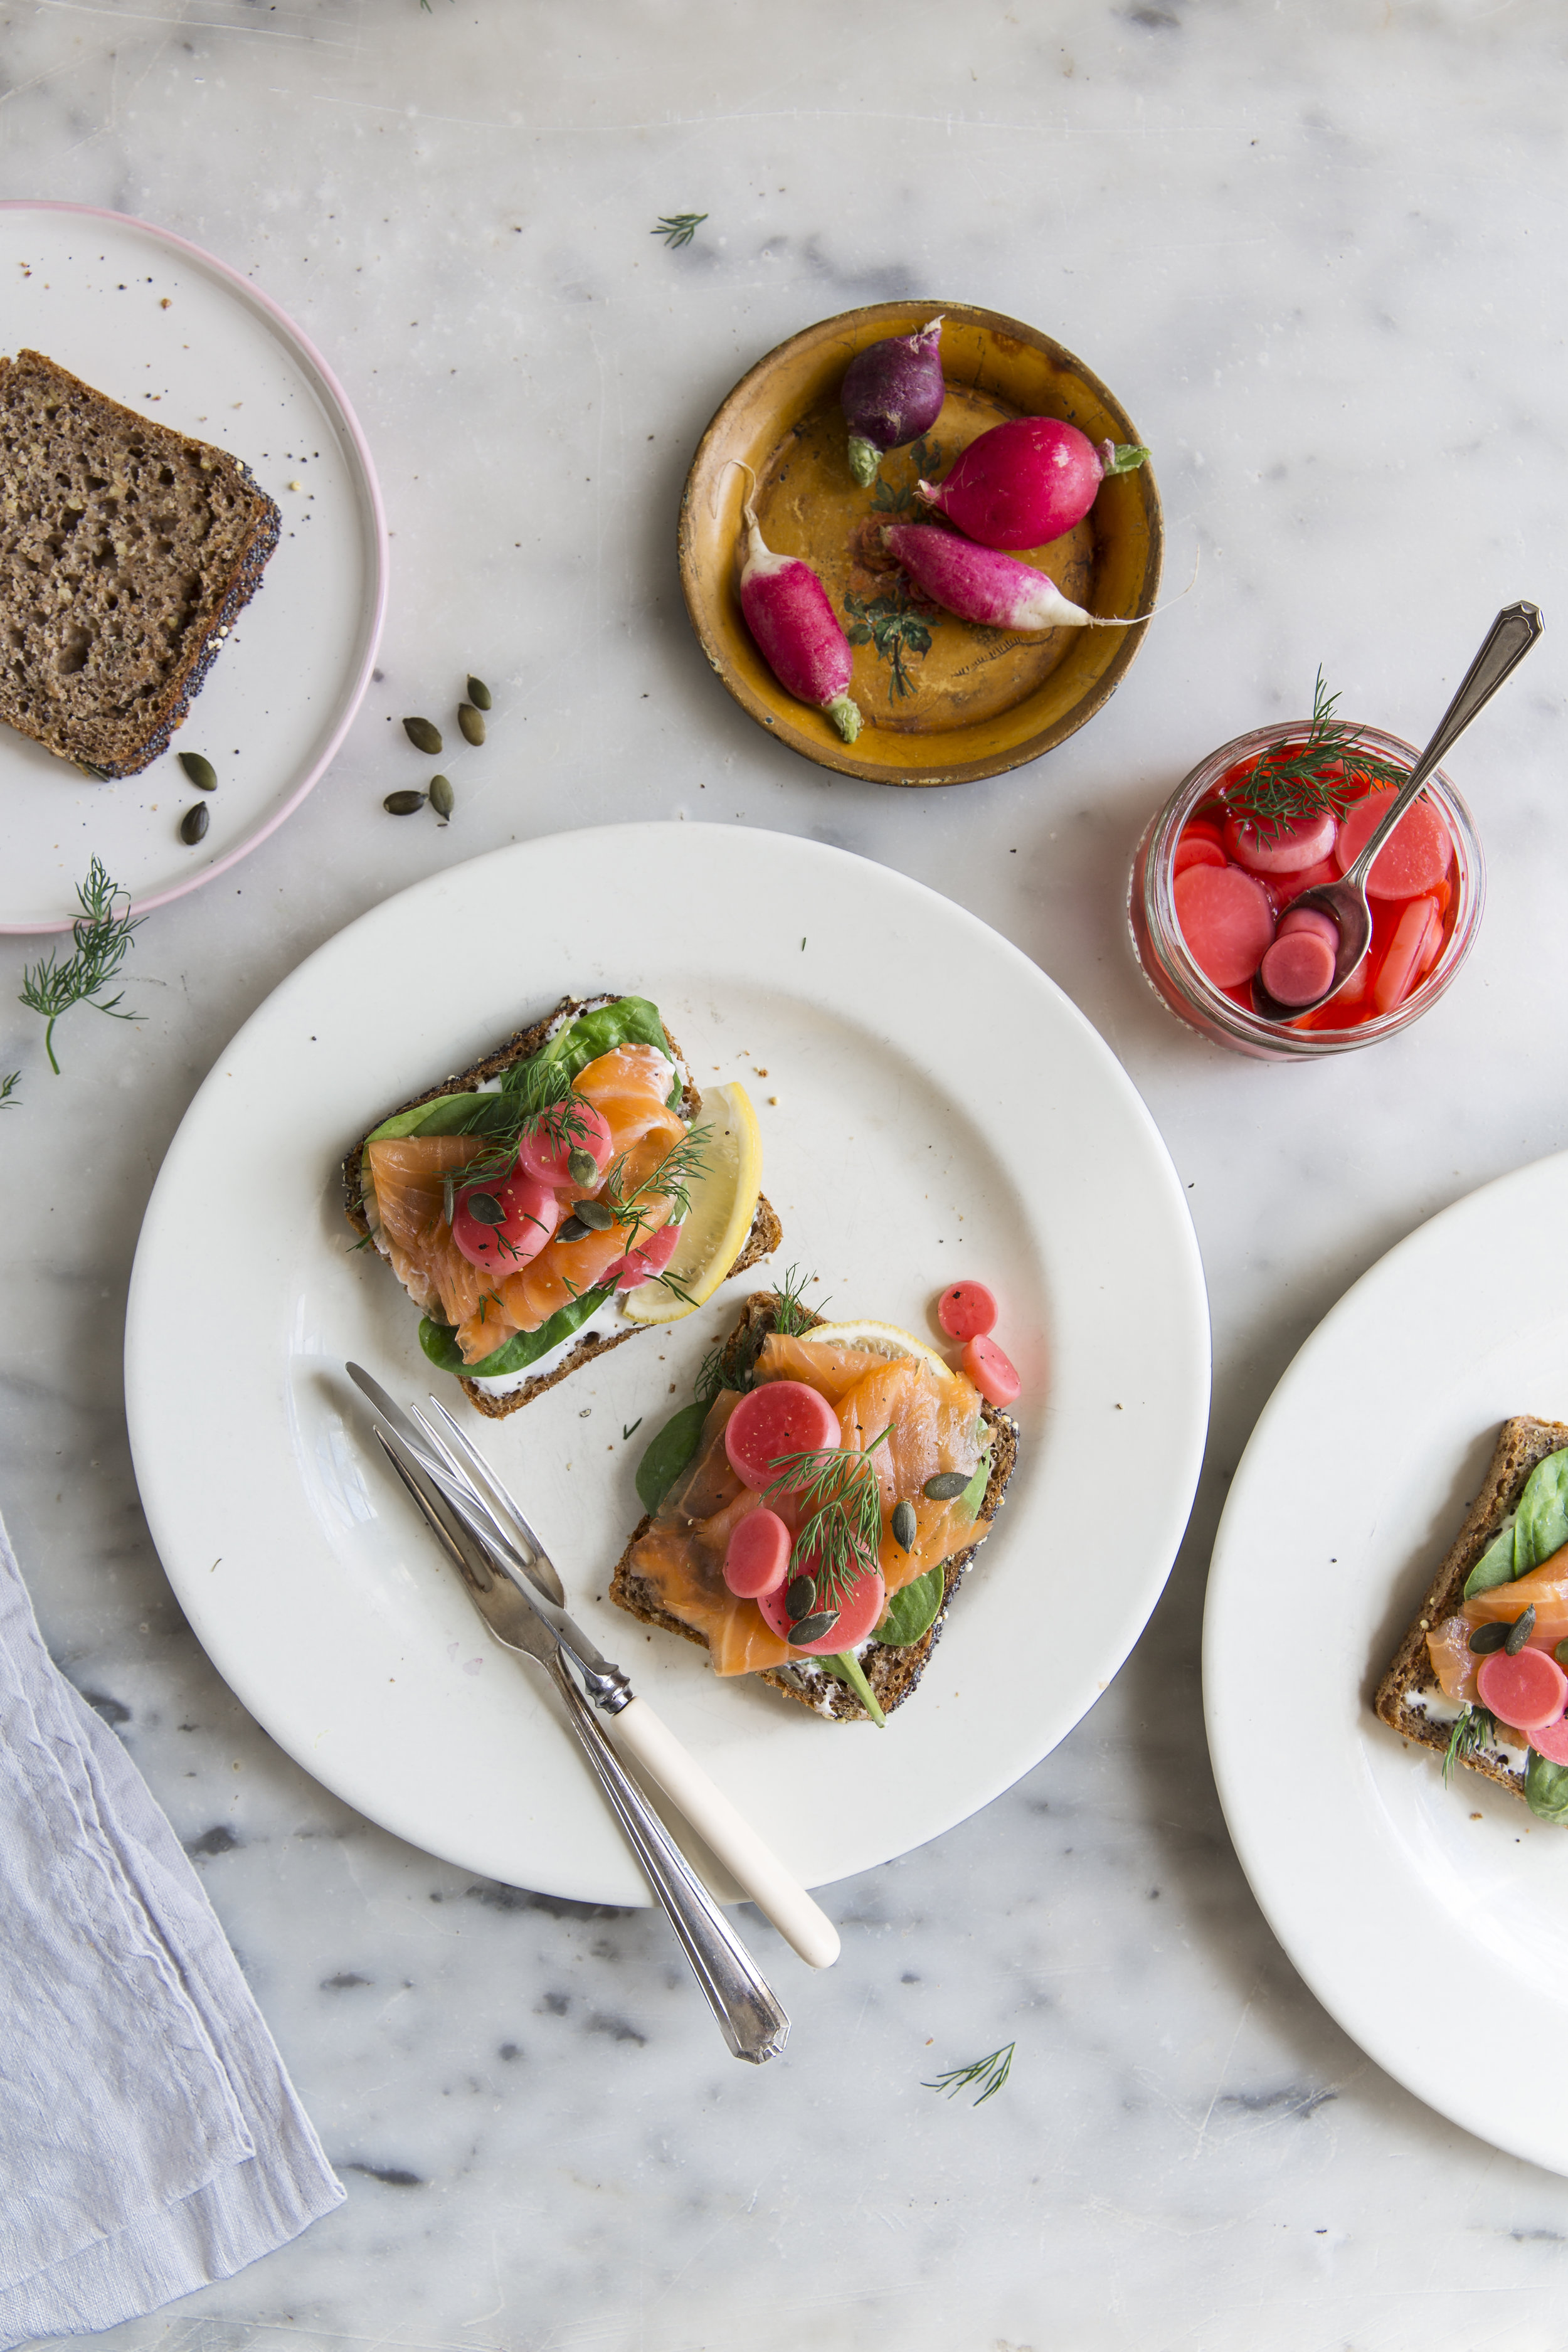 Pickled radishes on rye bread recipe